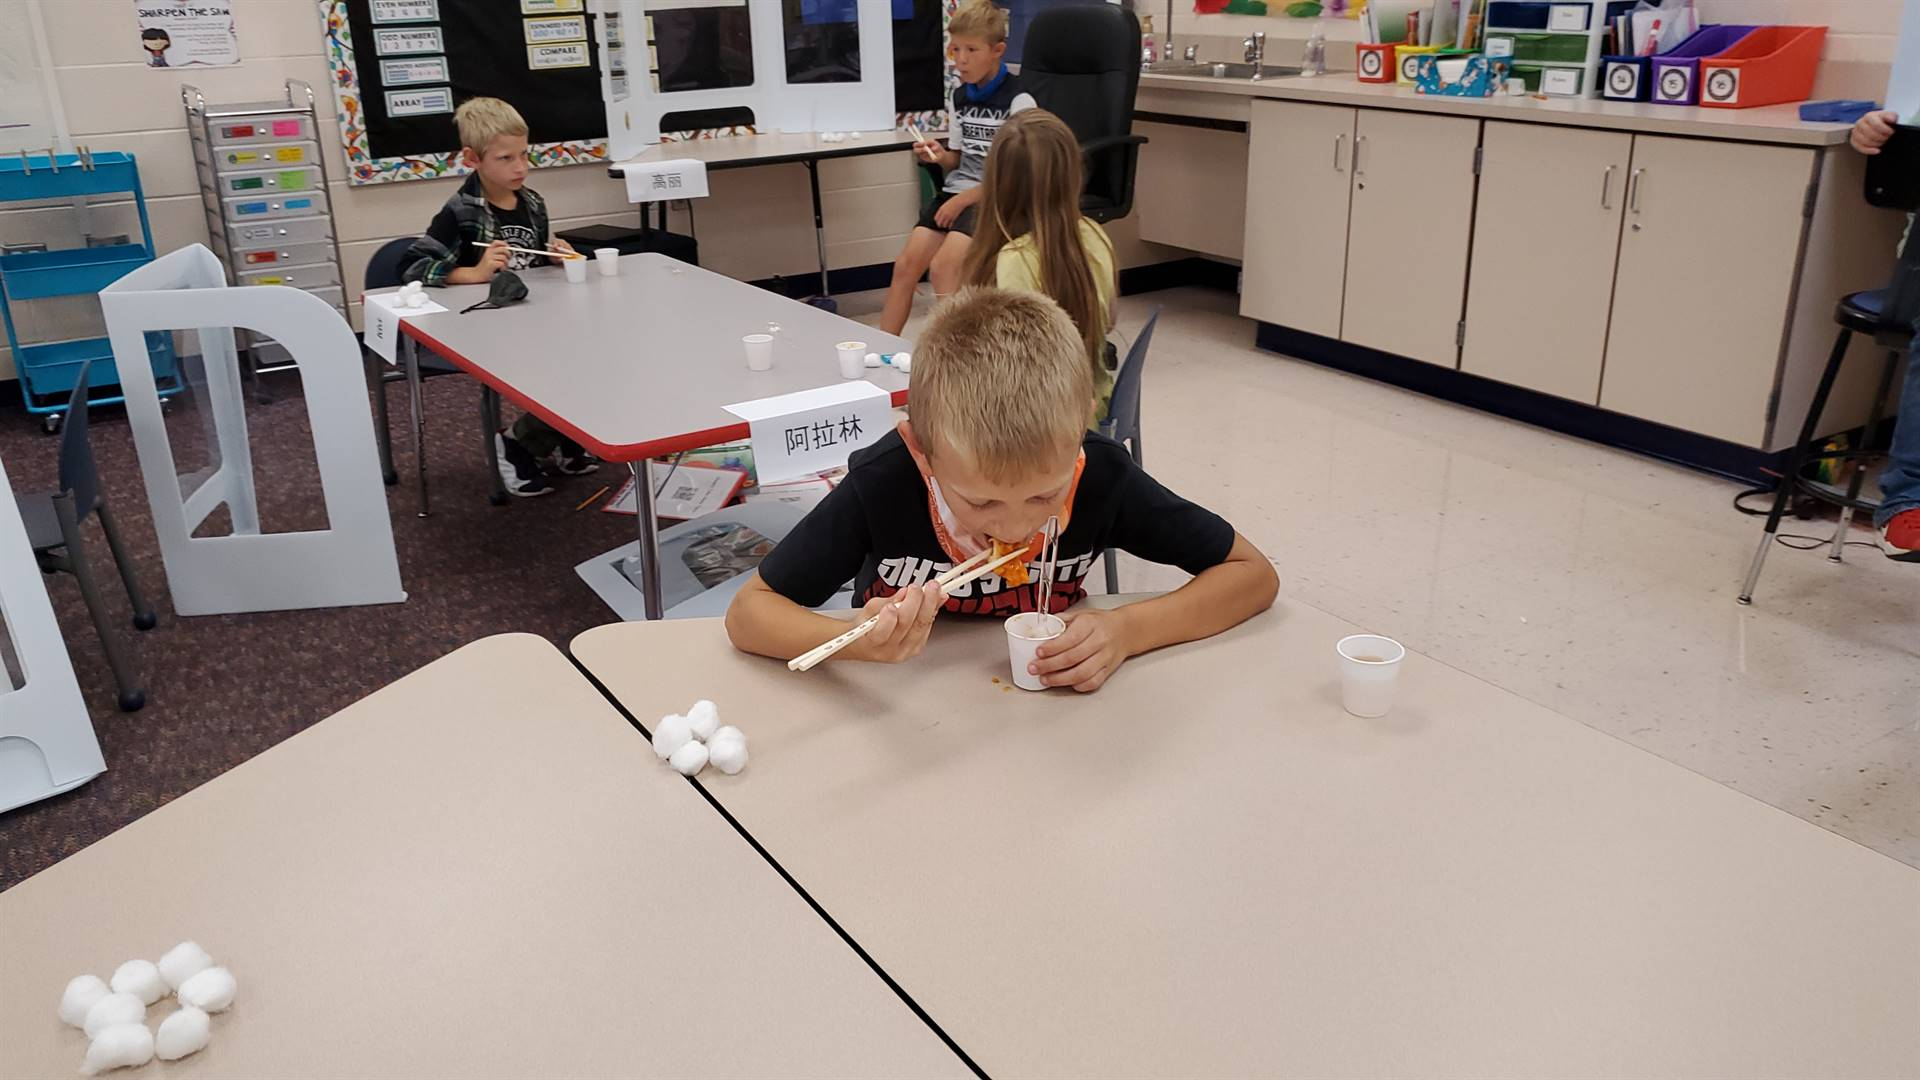 Student eating with Chopsticks